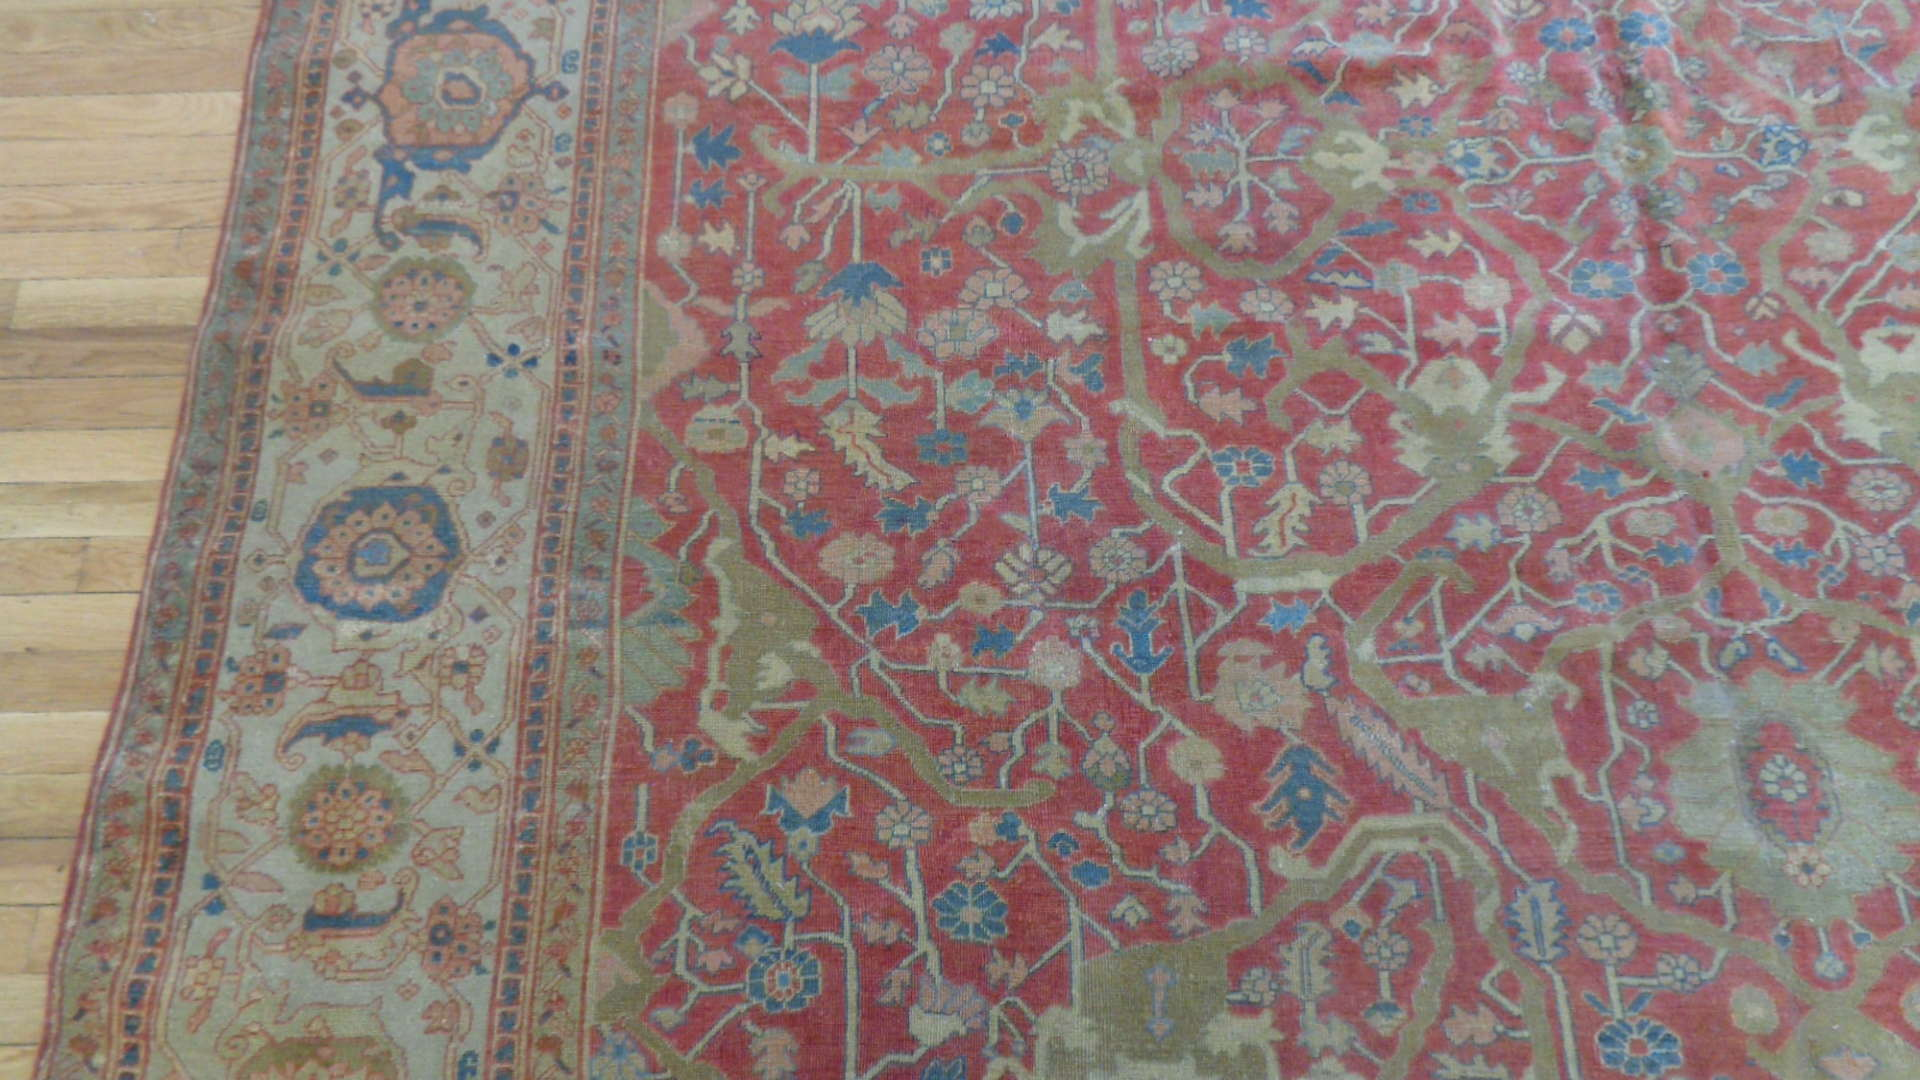 24745 antique persian serapi carpet 9.8x11.4-2